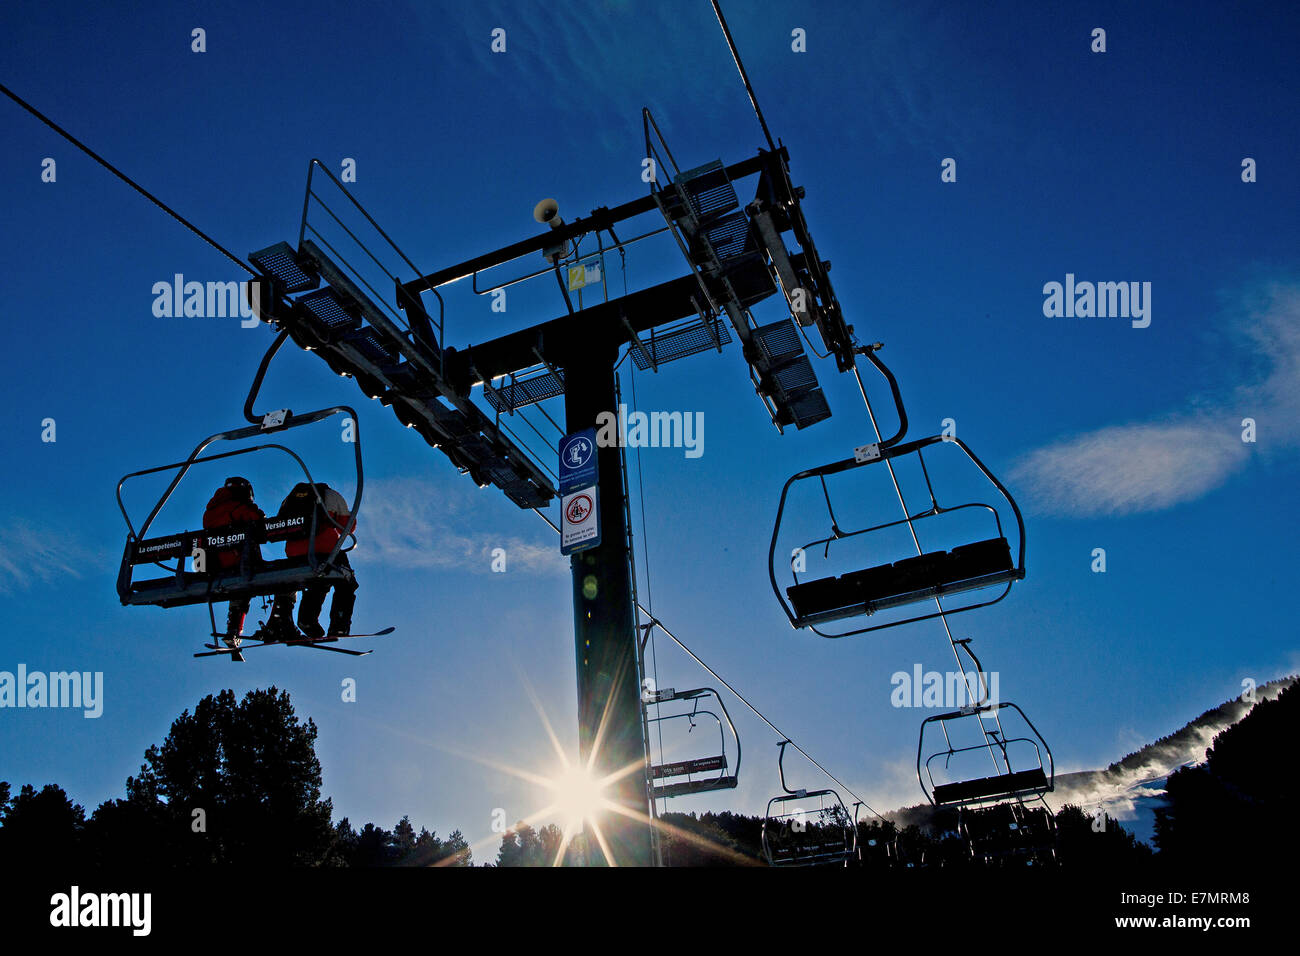 Chairlifts on their way to top of the mountain ski resort in Spain Stock Photo